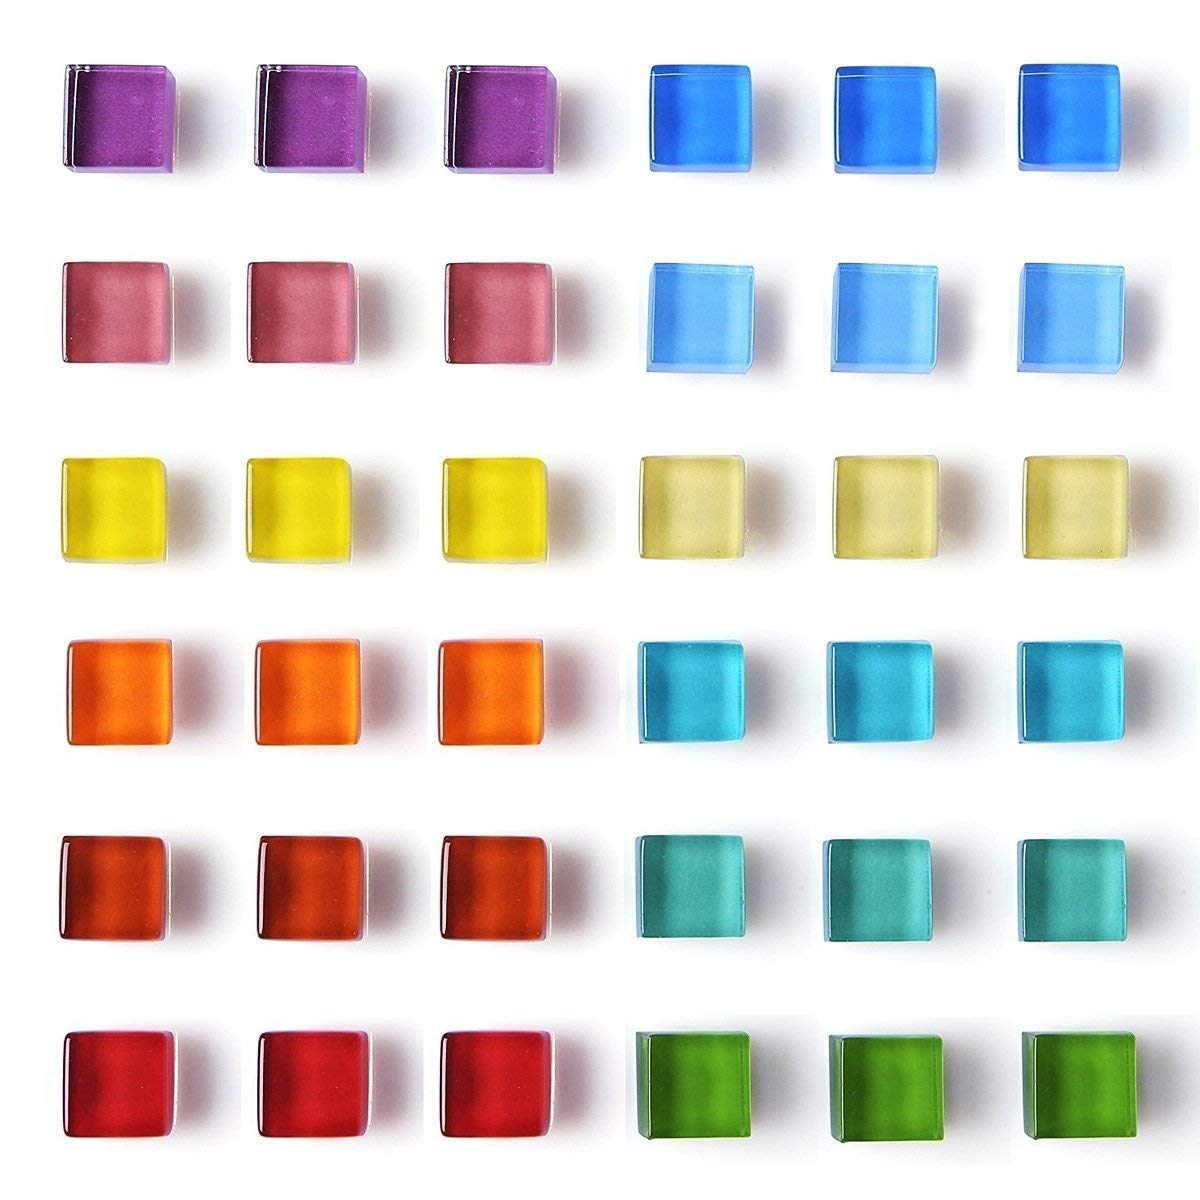 DIYSELF 36 Pack Glass Fridge Magnets Refrigerator Magnets Office Magnets Small magnets Colorful Magnets for Whiteboard